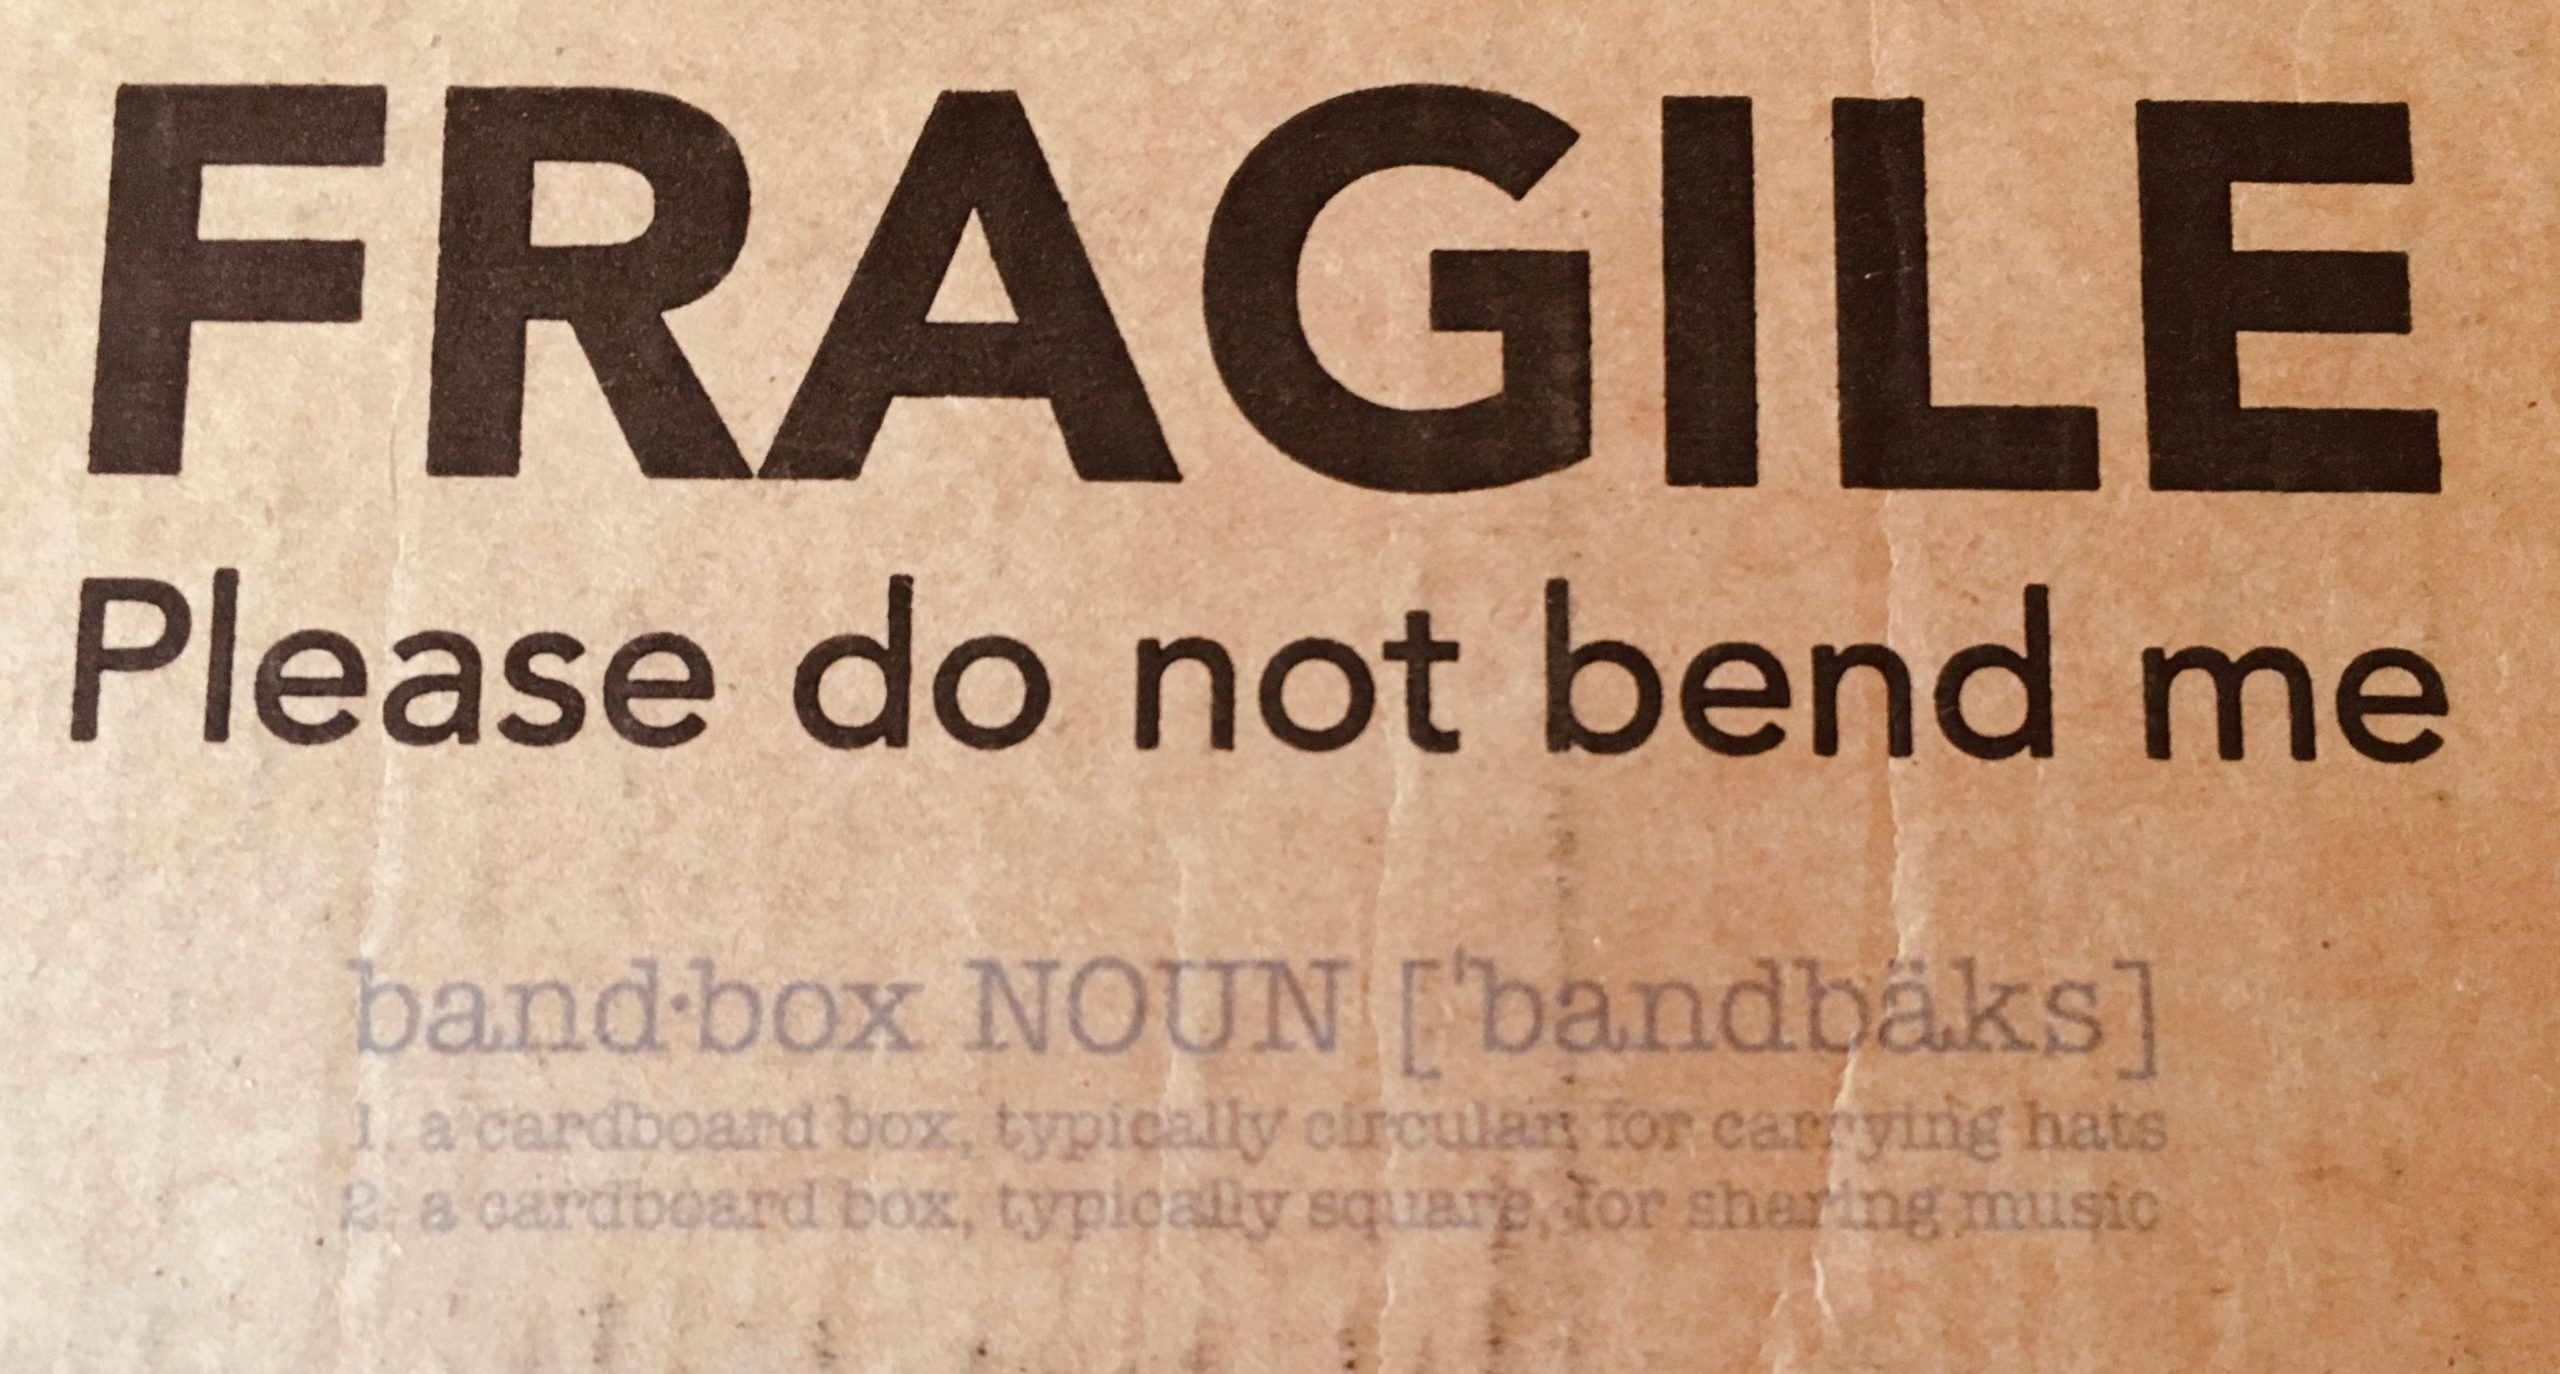 Geek Insider, GeekInsider, GeekInsider.com,, Bandbox Unboxed Vol. 1 - Neil Young, Entertainment, Culture, Events, Geek Life